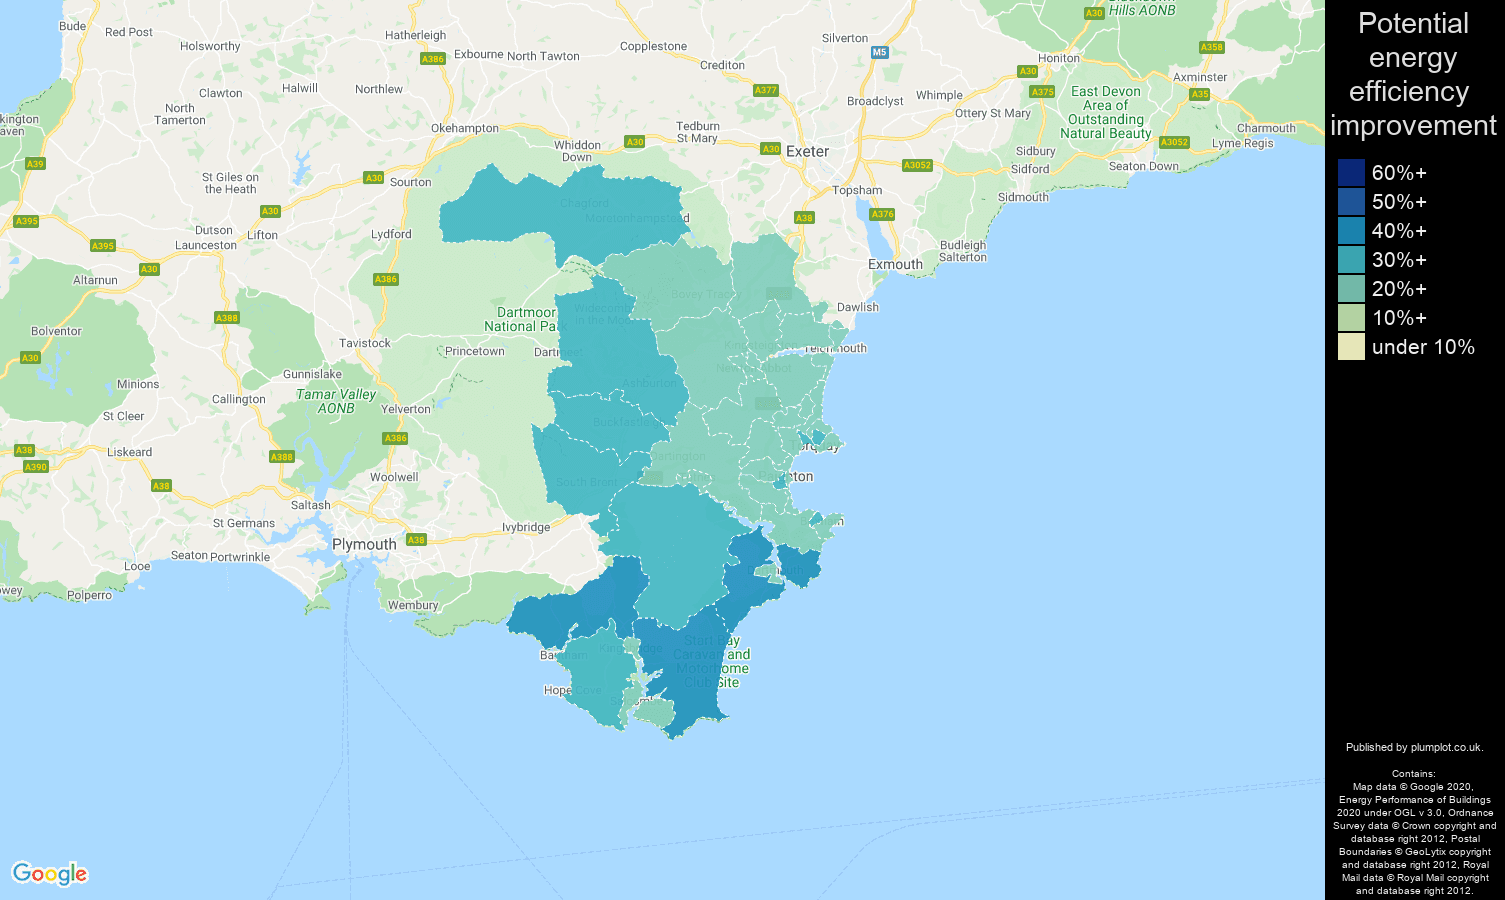 Torquay map of potential energy efficiency improvement of houses